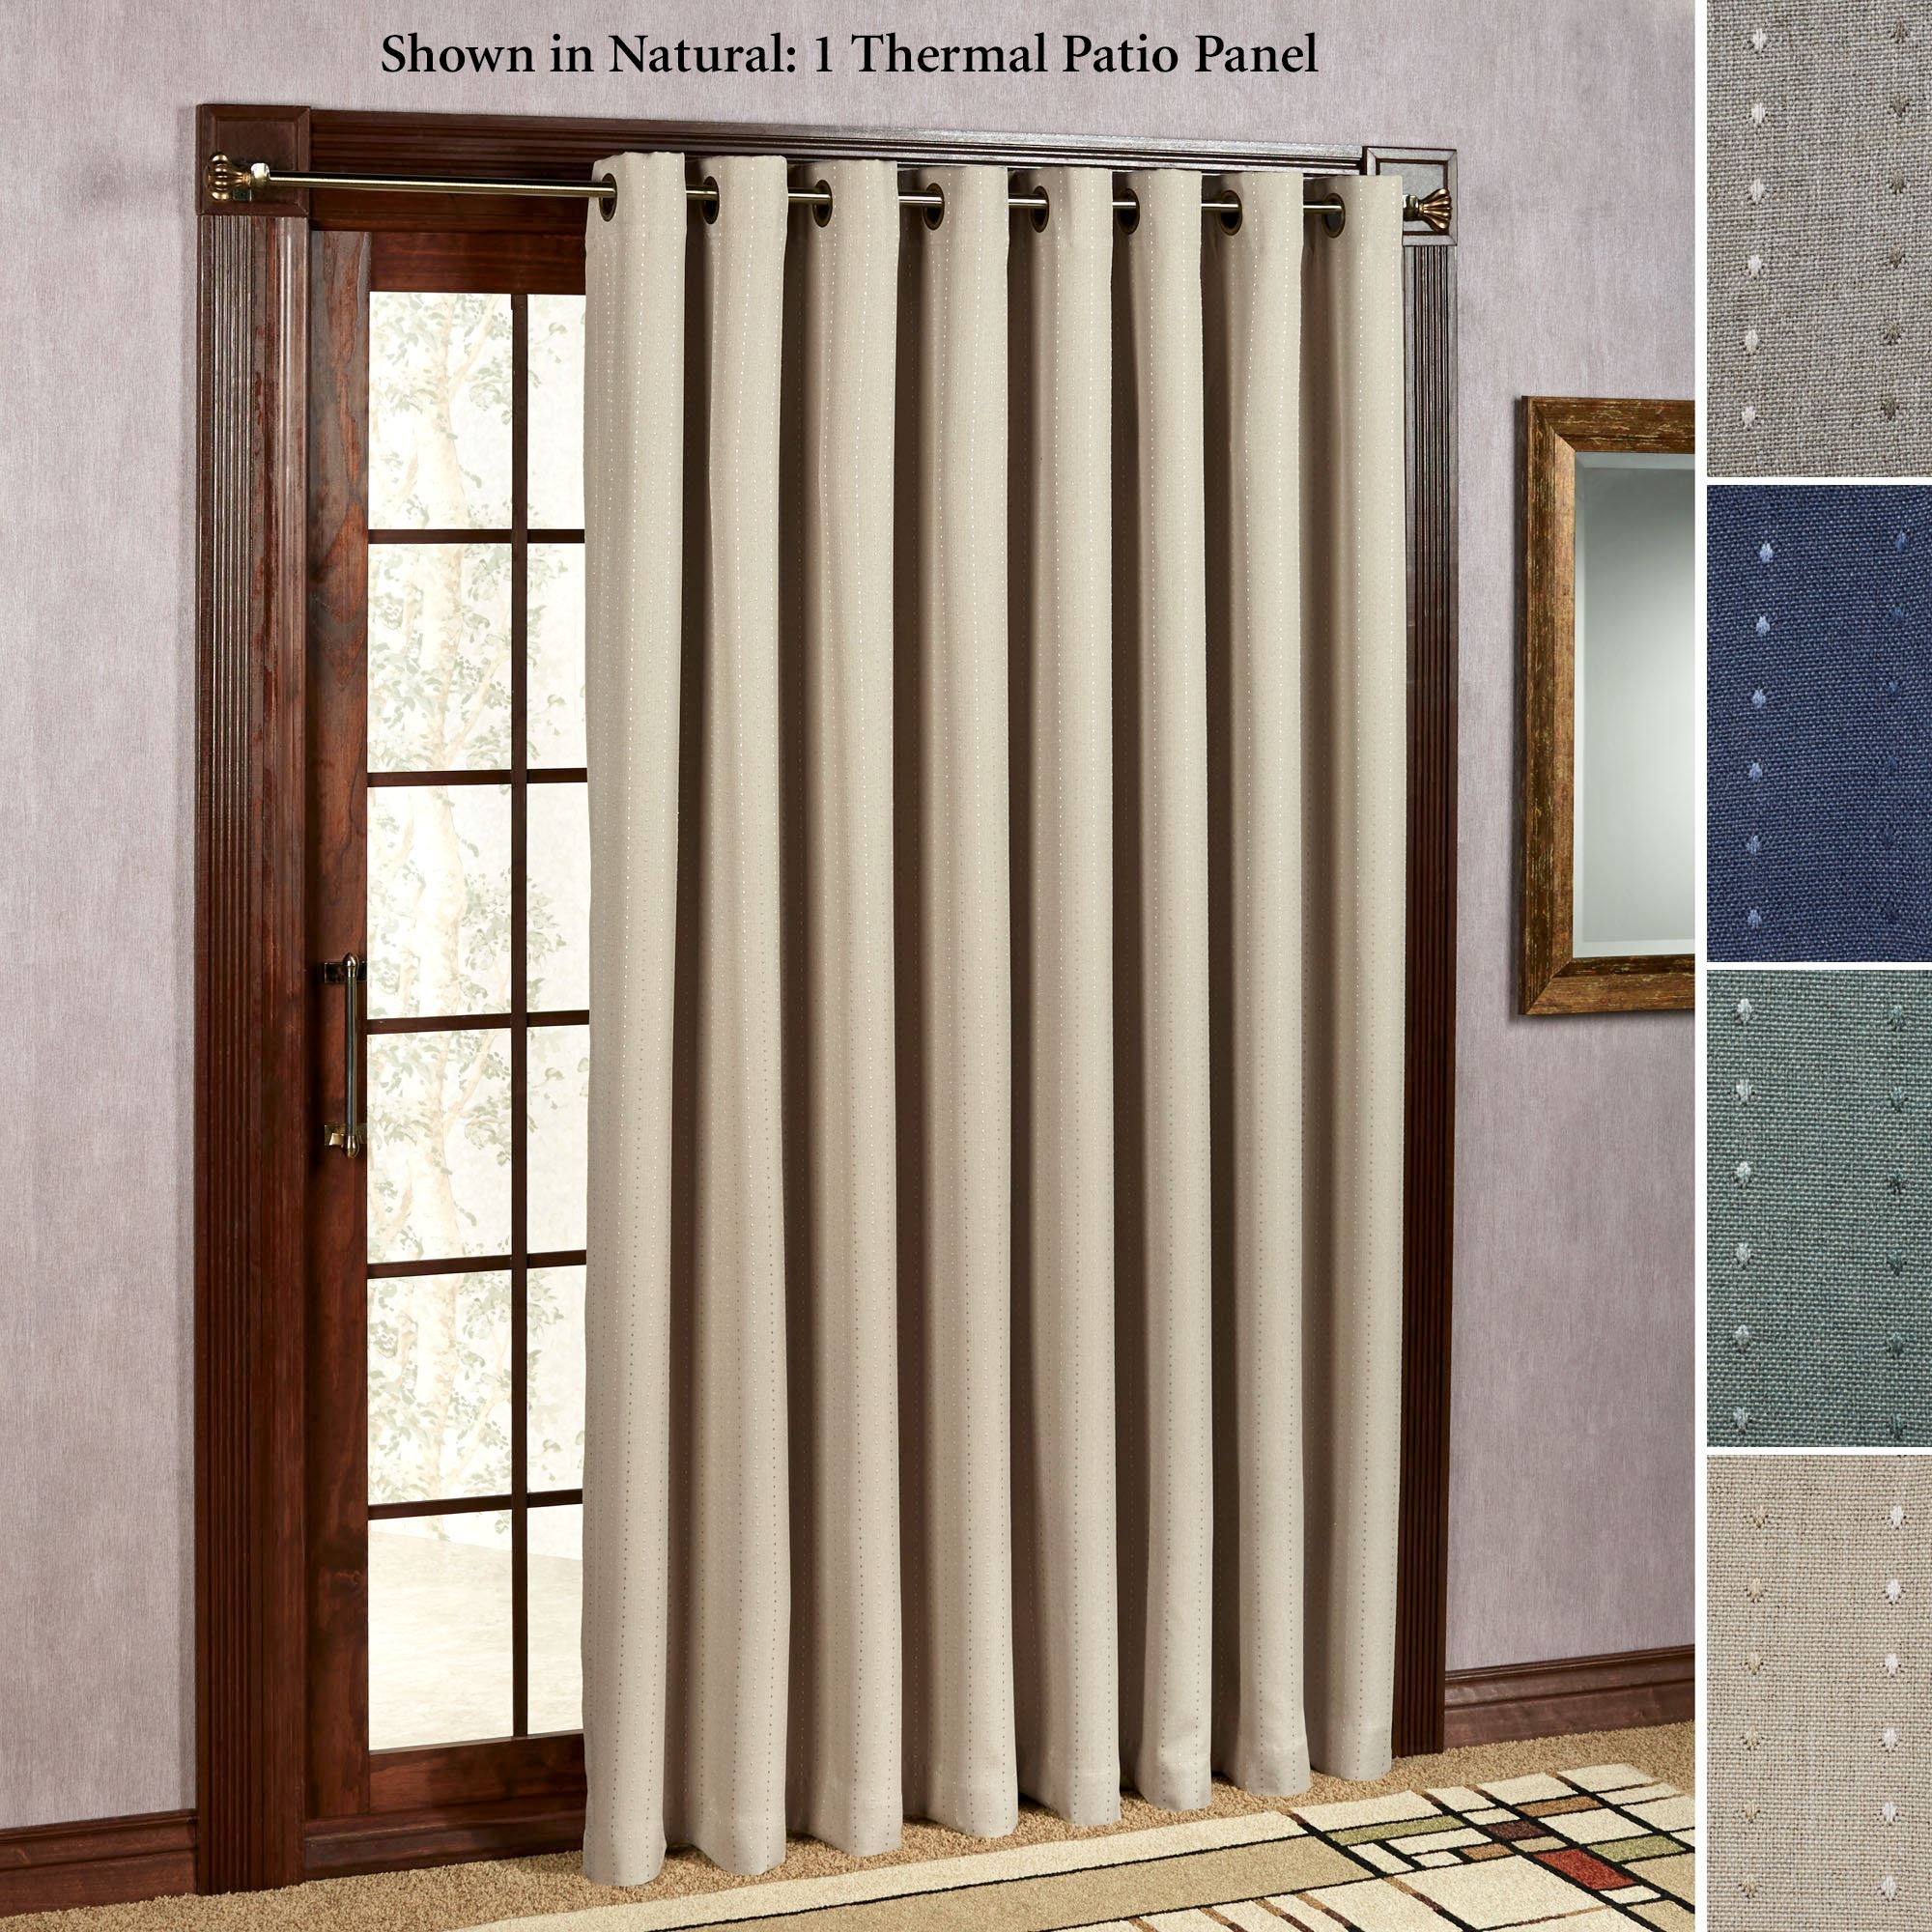 Sliding Curtain Panels For Patio Doorspatio door curtain panels touch of class